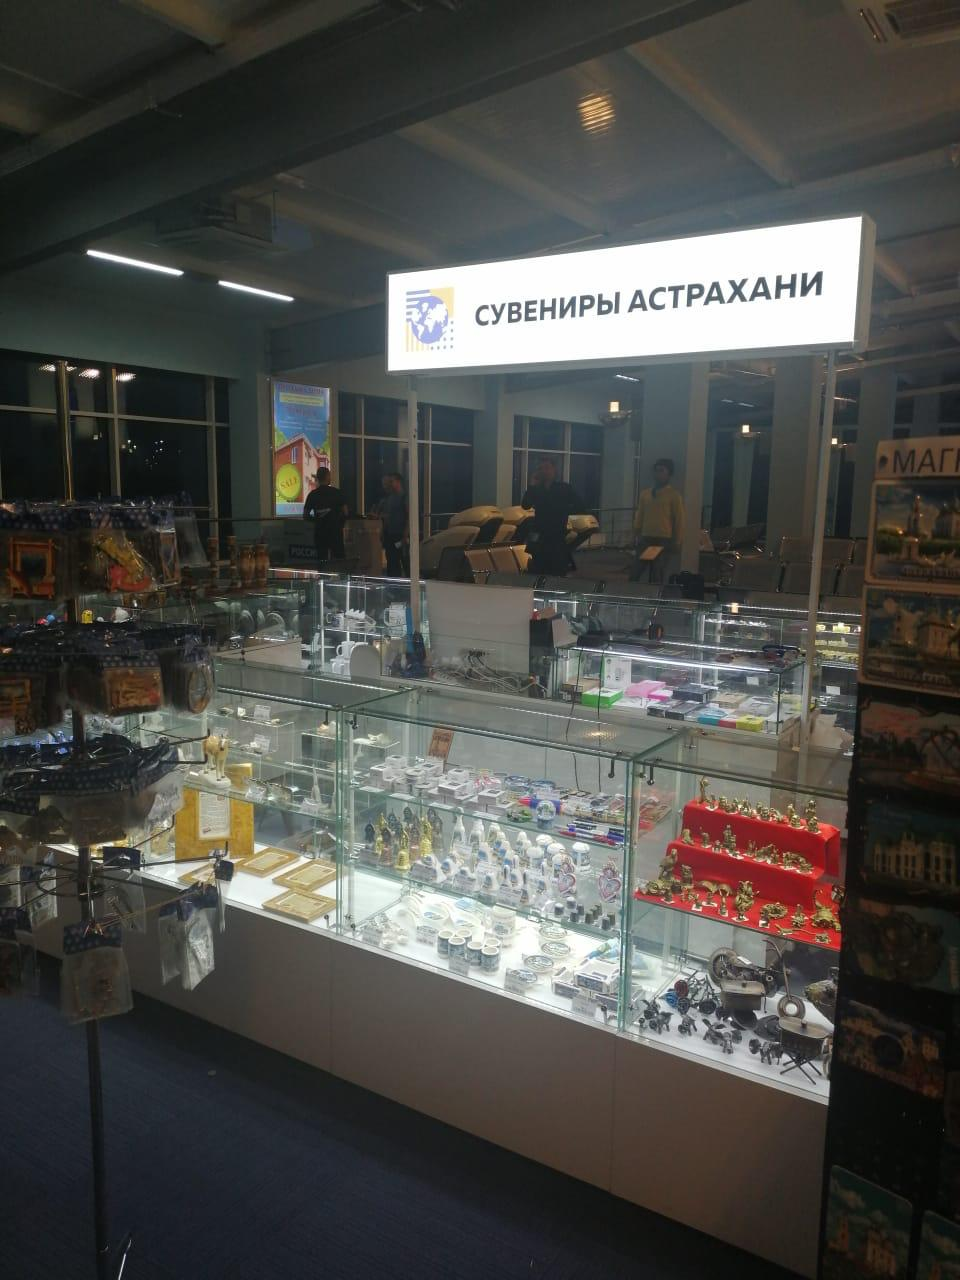 Shop Souvenirs of the regions of the city of Astrakhan